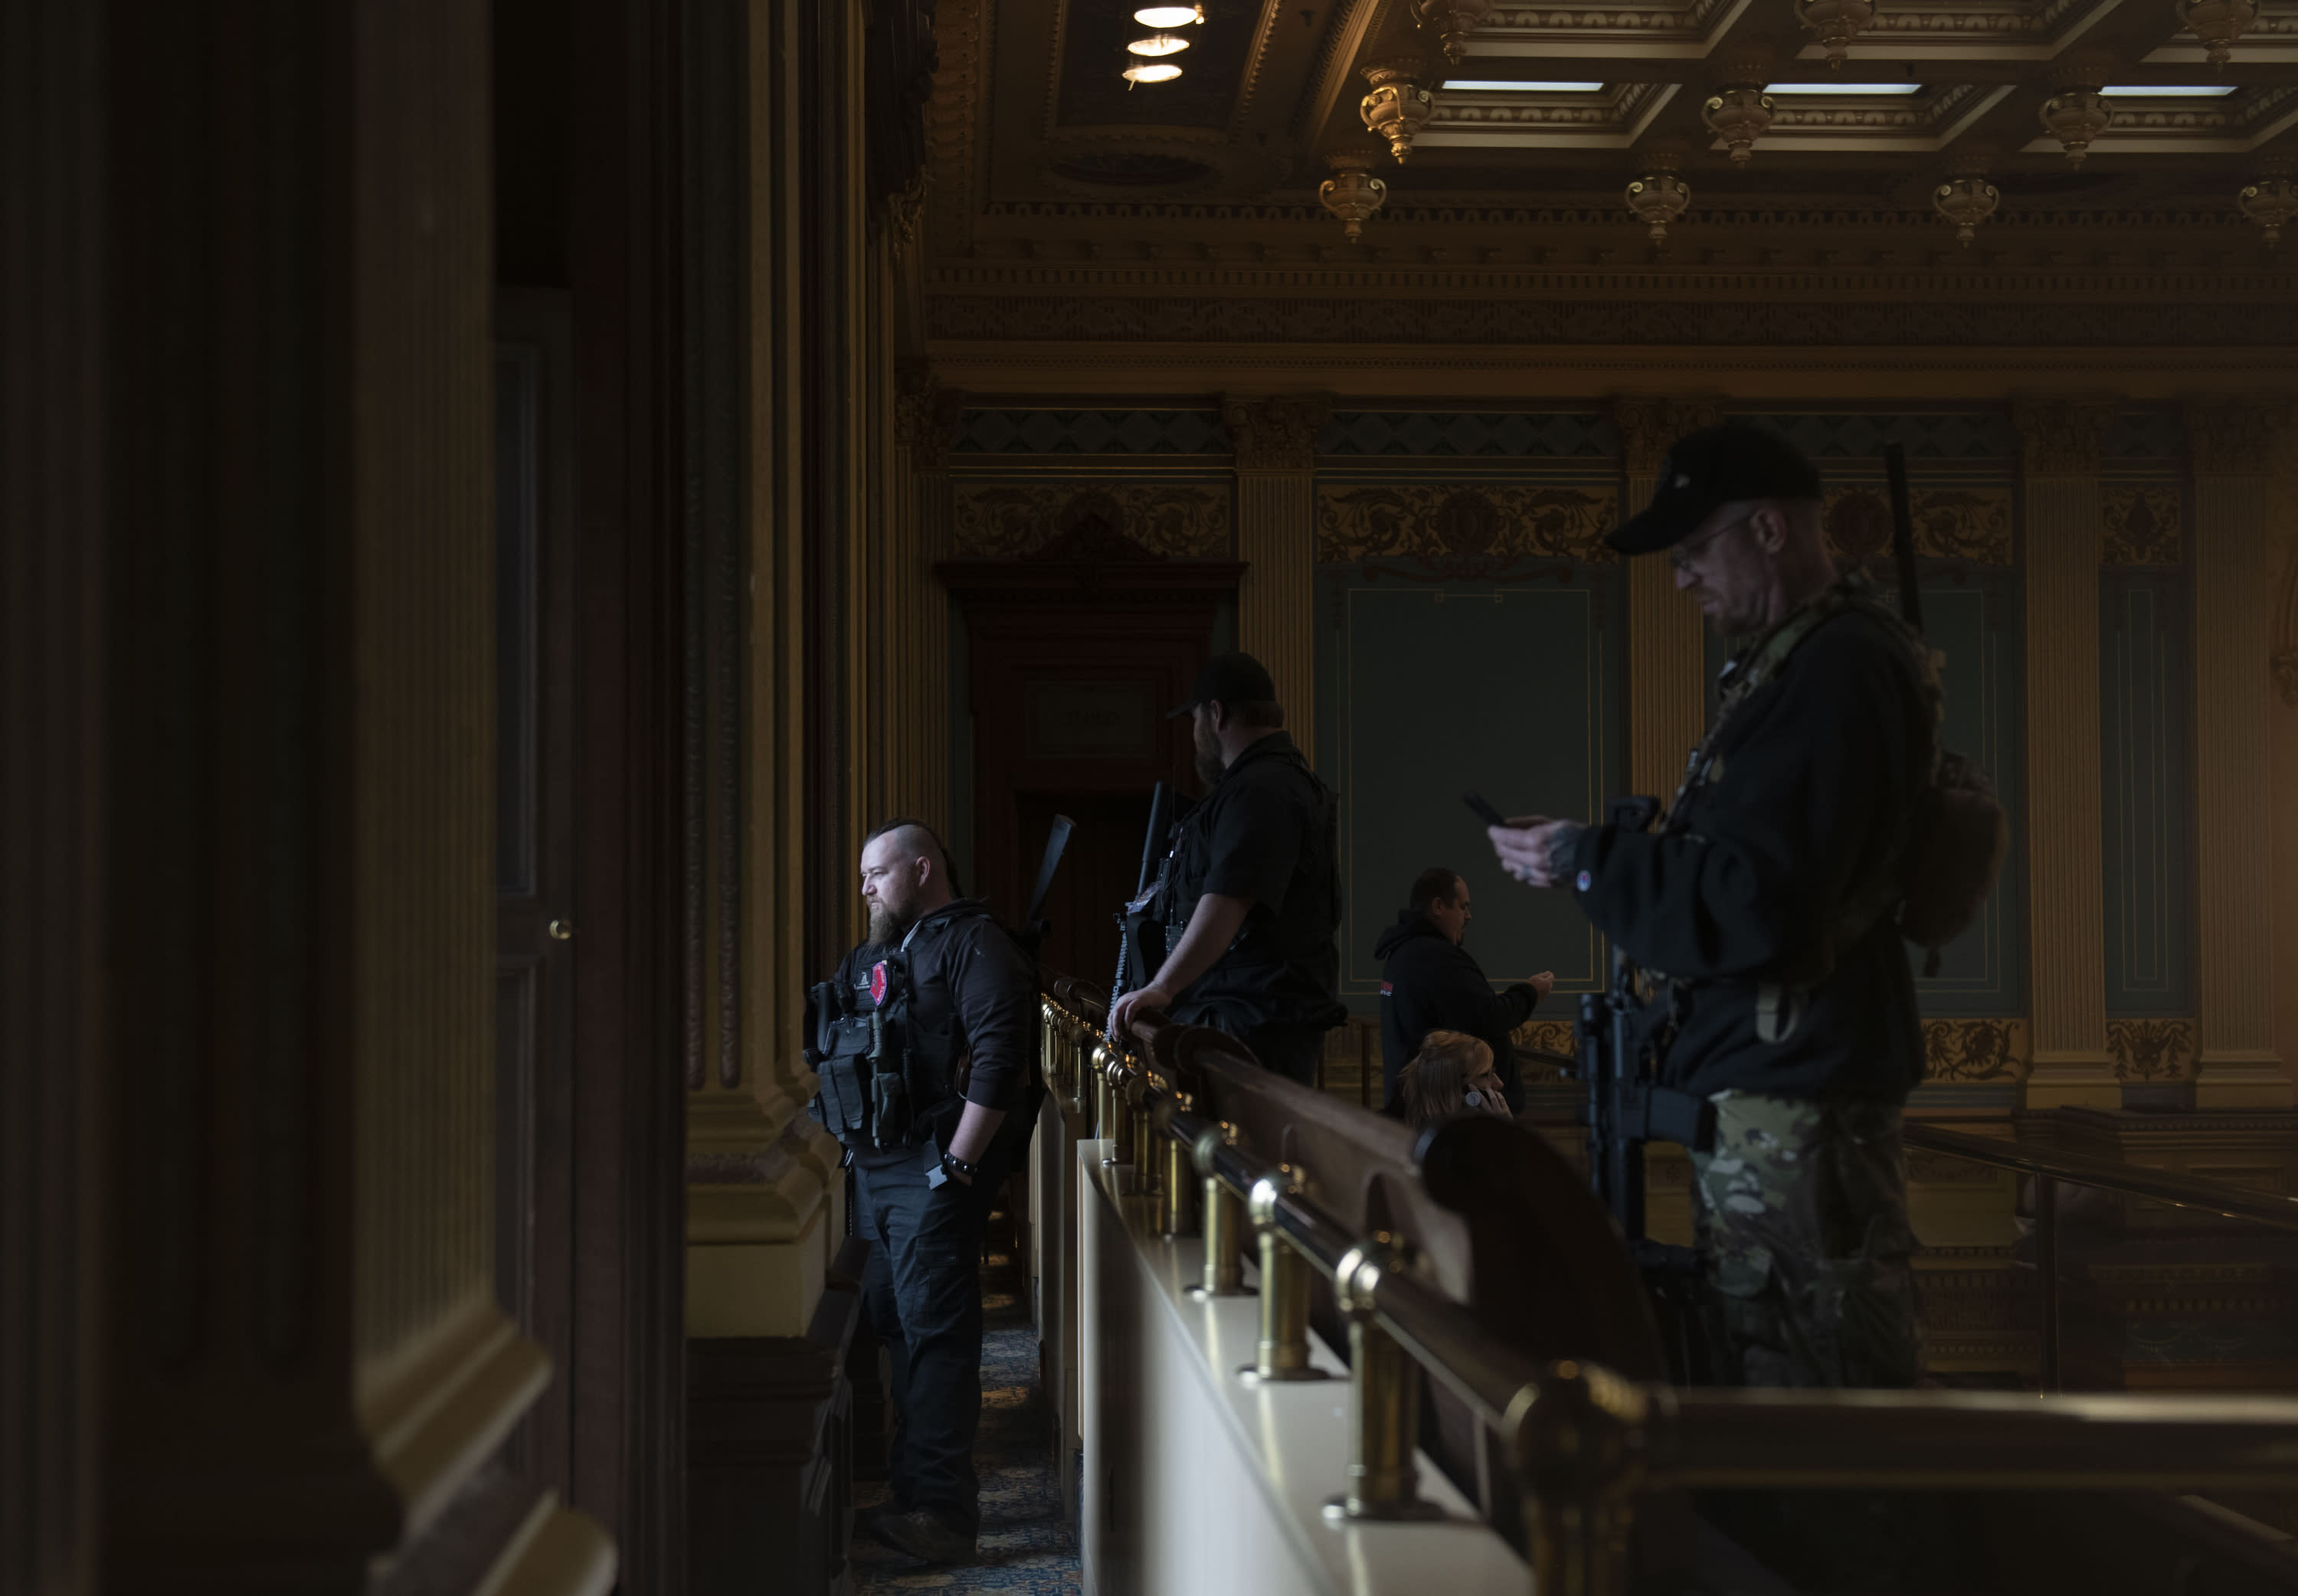 In this April 30, 2020, photo, members of a militia group watch the protest outside while waiting for the Michigan Senate to vote at the Capitol in Lansing, Mich. Gun-carrying protesters have been a common sight at some demonstrations calling for coronavirus-related restrictions to be lifted. But an armed militia's involvement in an angry protest in the Michigan statehouse Thursday marked an escalation that drew condemnation and shone a spotlight on the practice of bringing weapons to protest. (Nicole Hester/MLive.com/Ann Arbor News via AP)